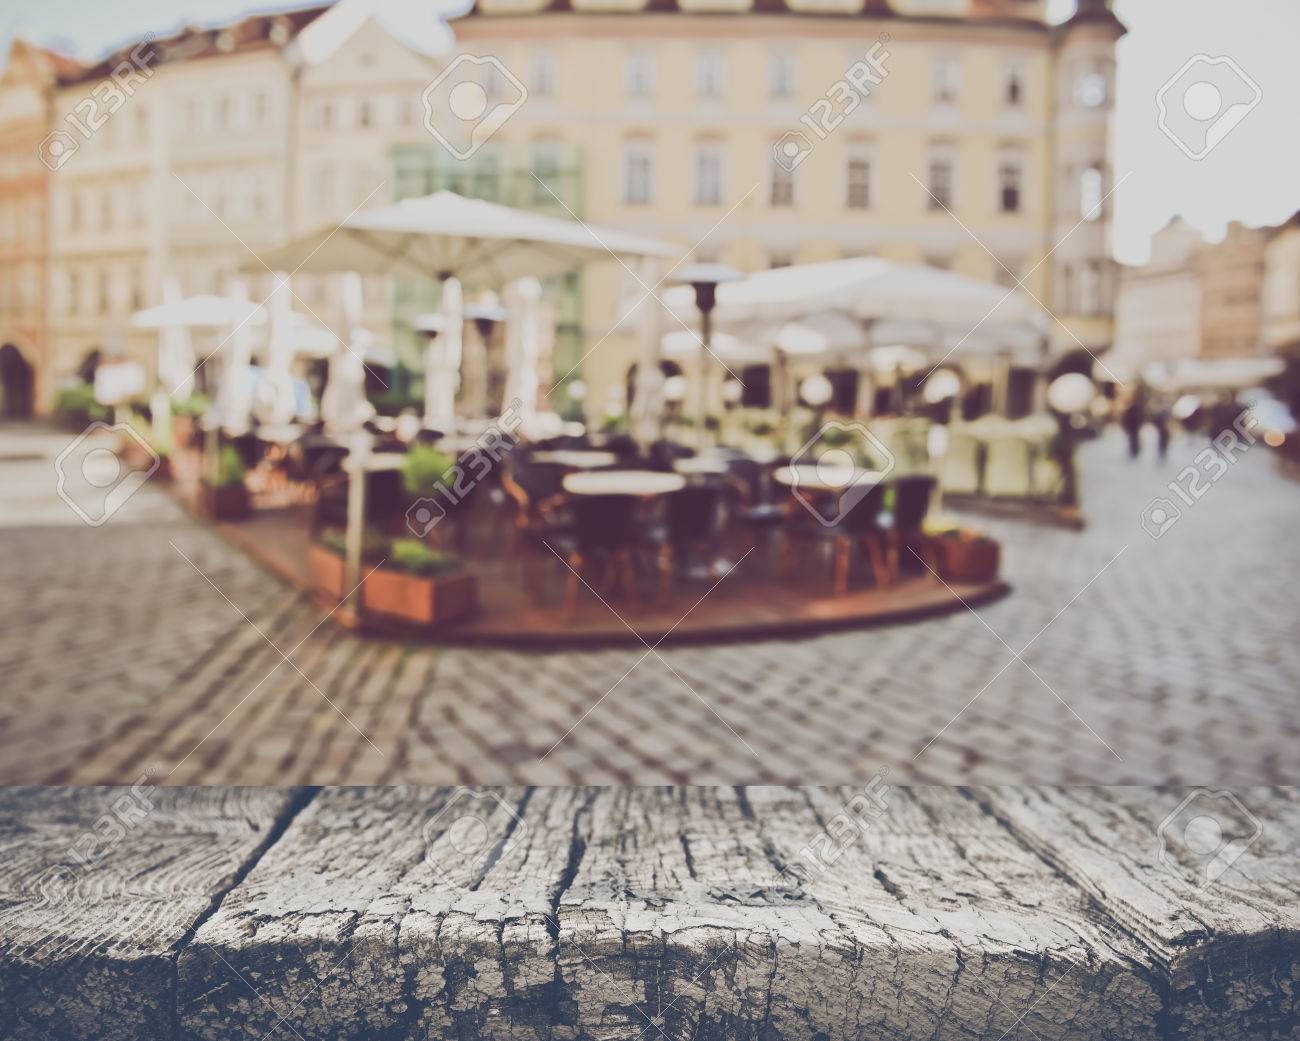 Blurred Empty Cafe in European City - 55008000